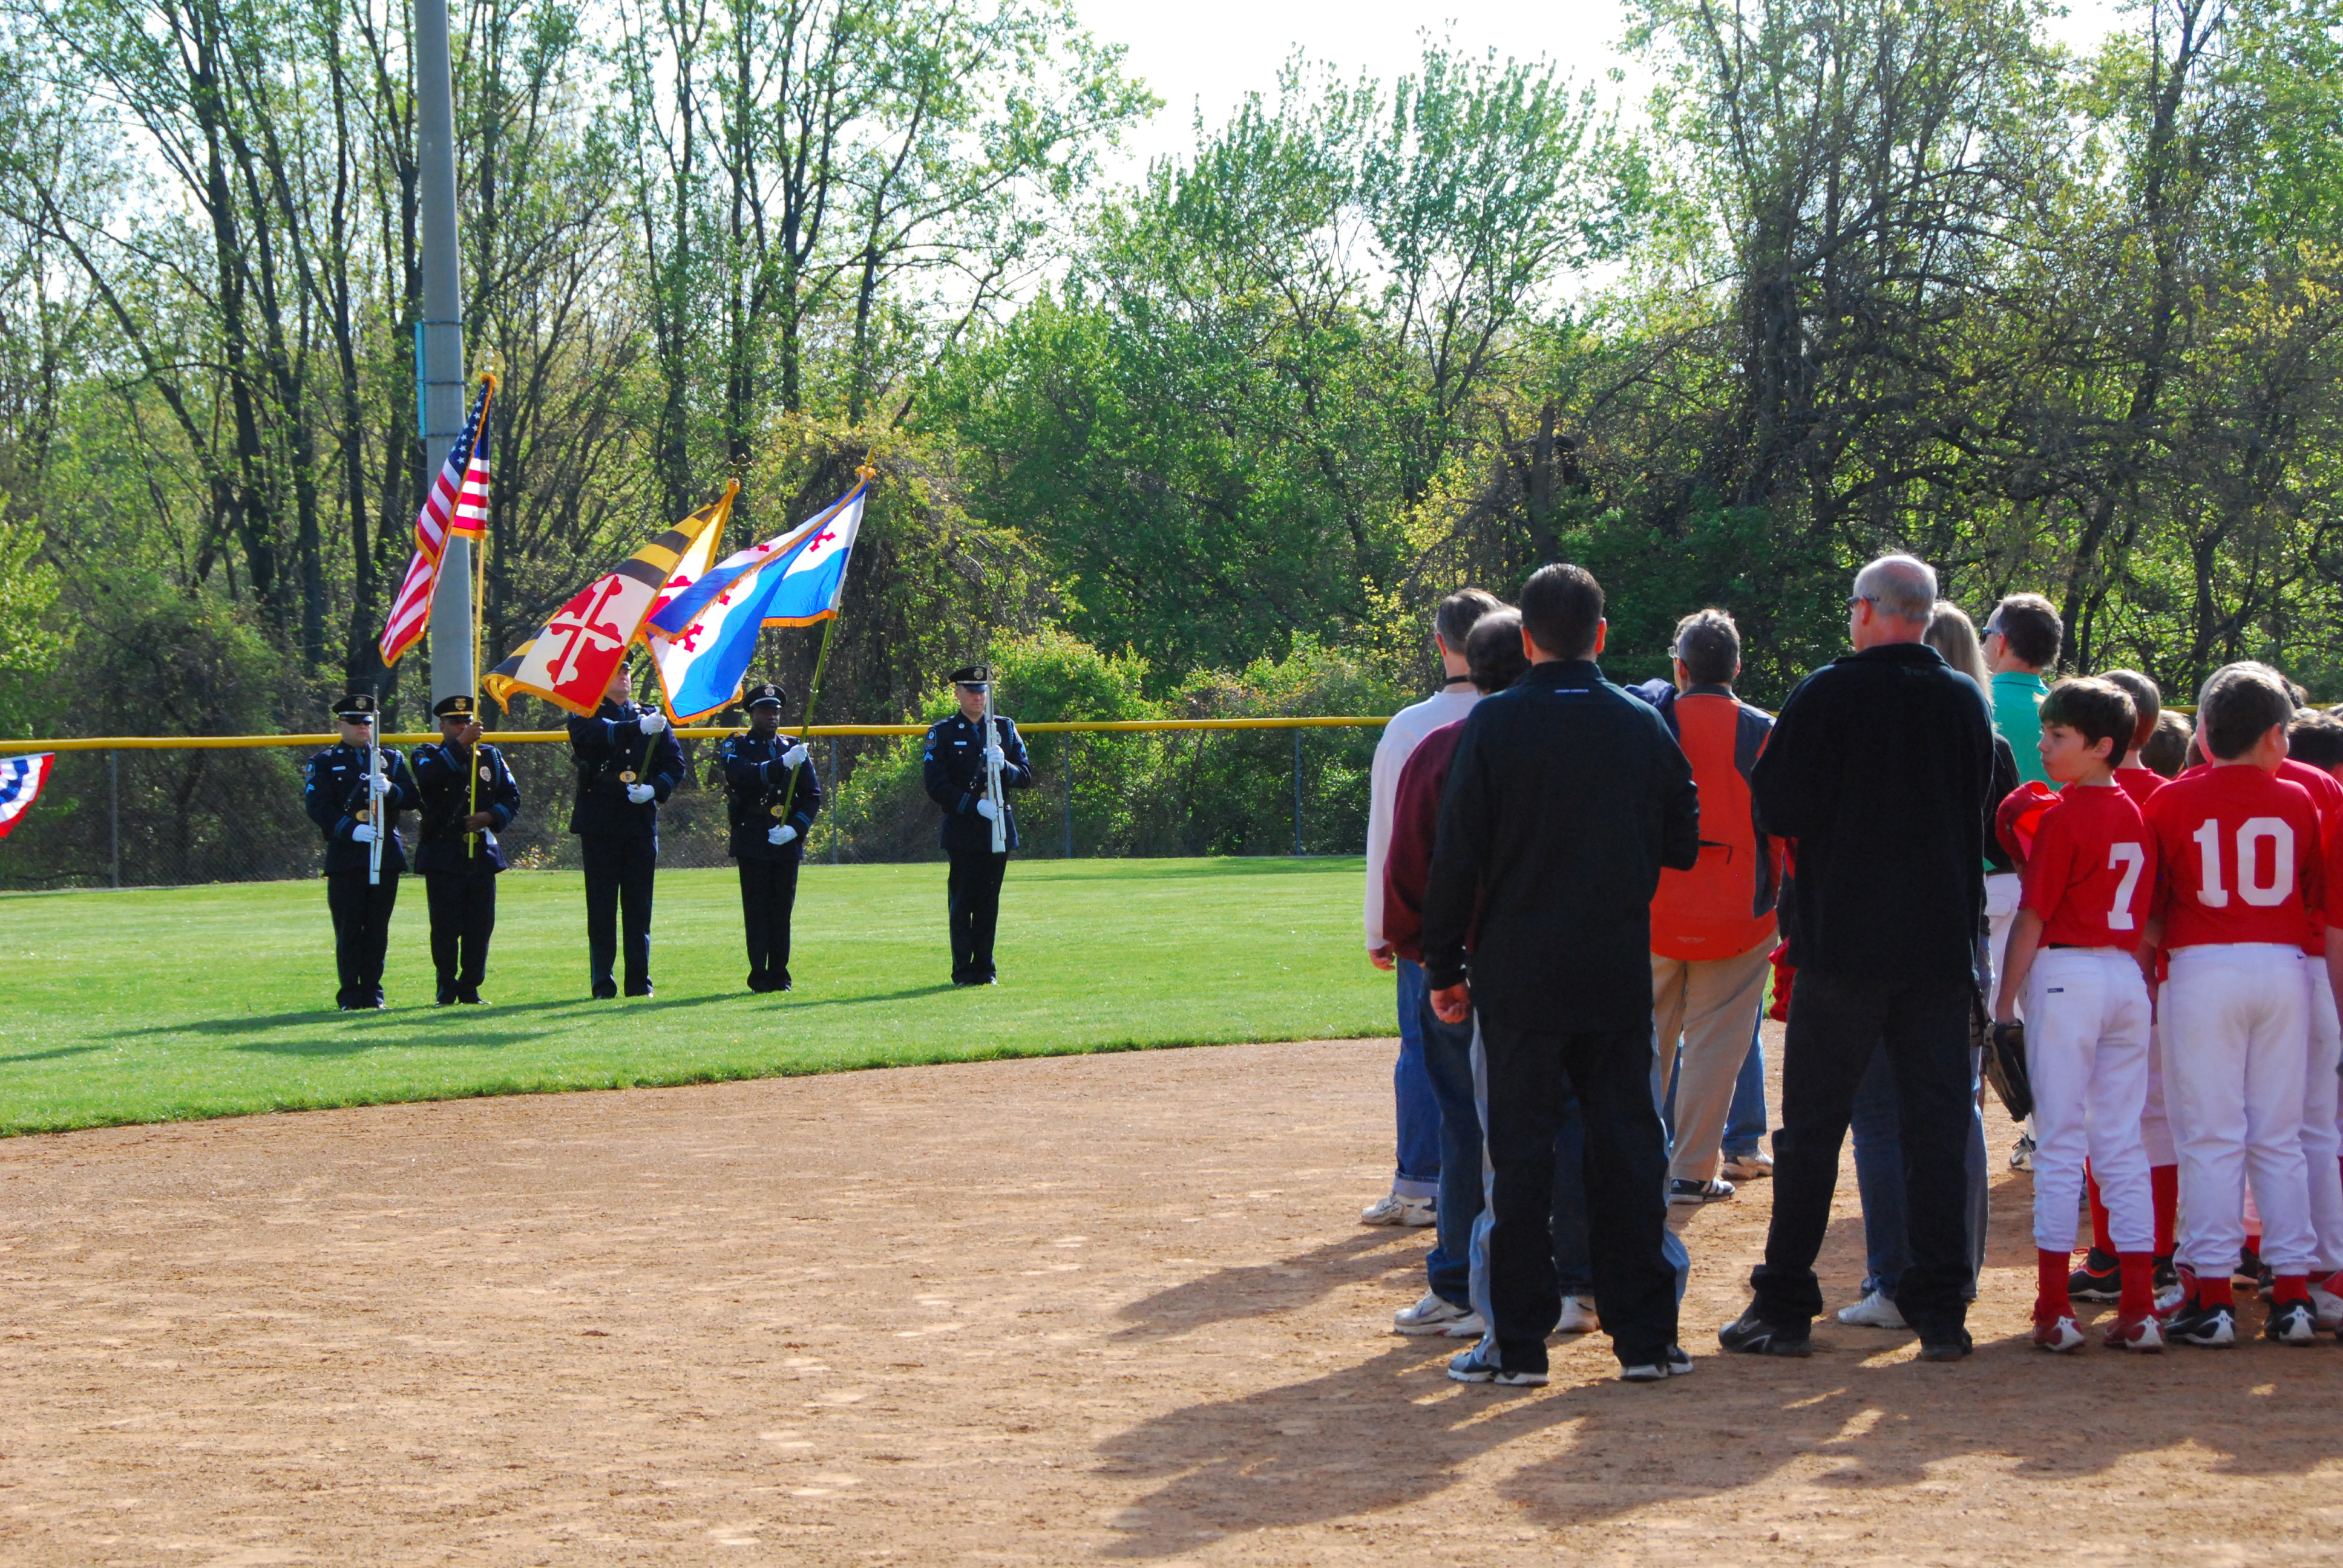 Dogwood Baseball Field - Opening Day